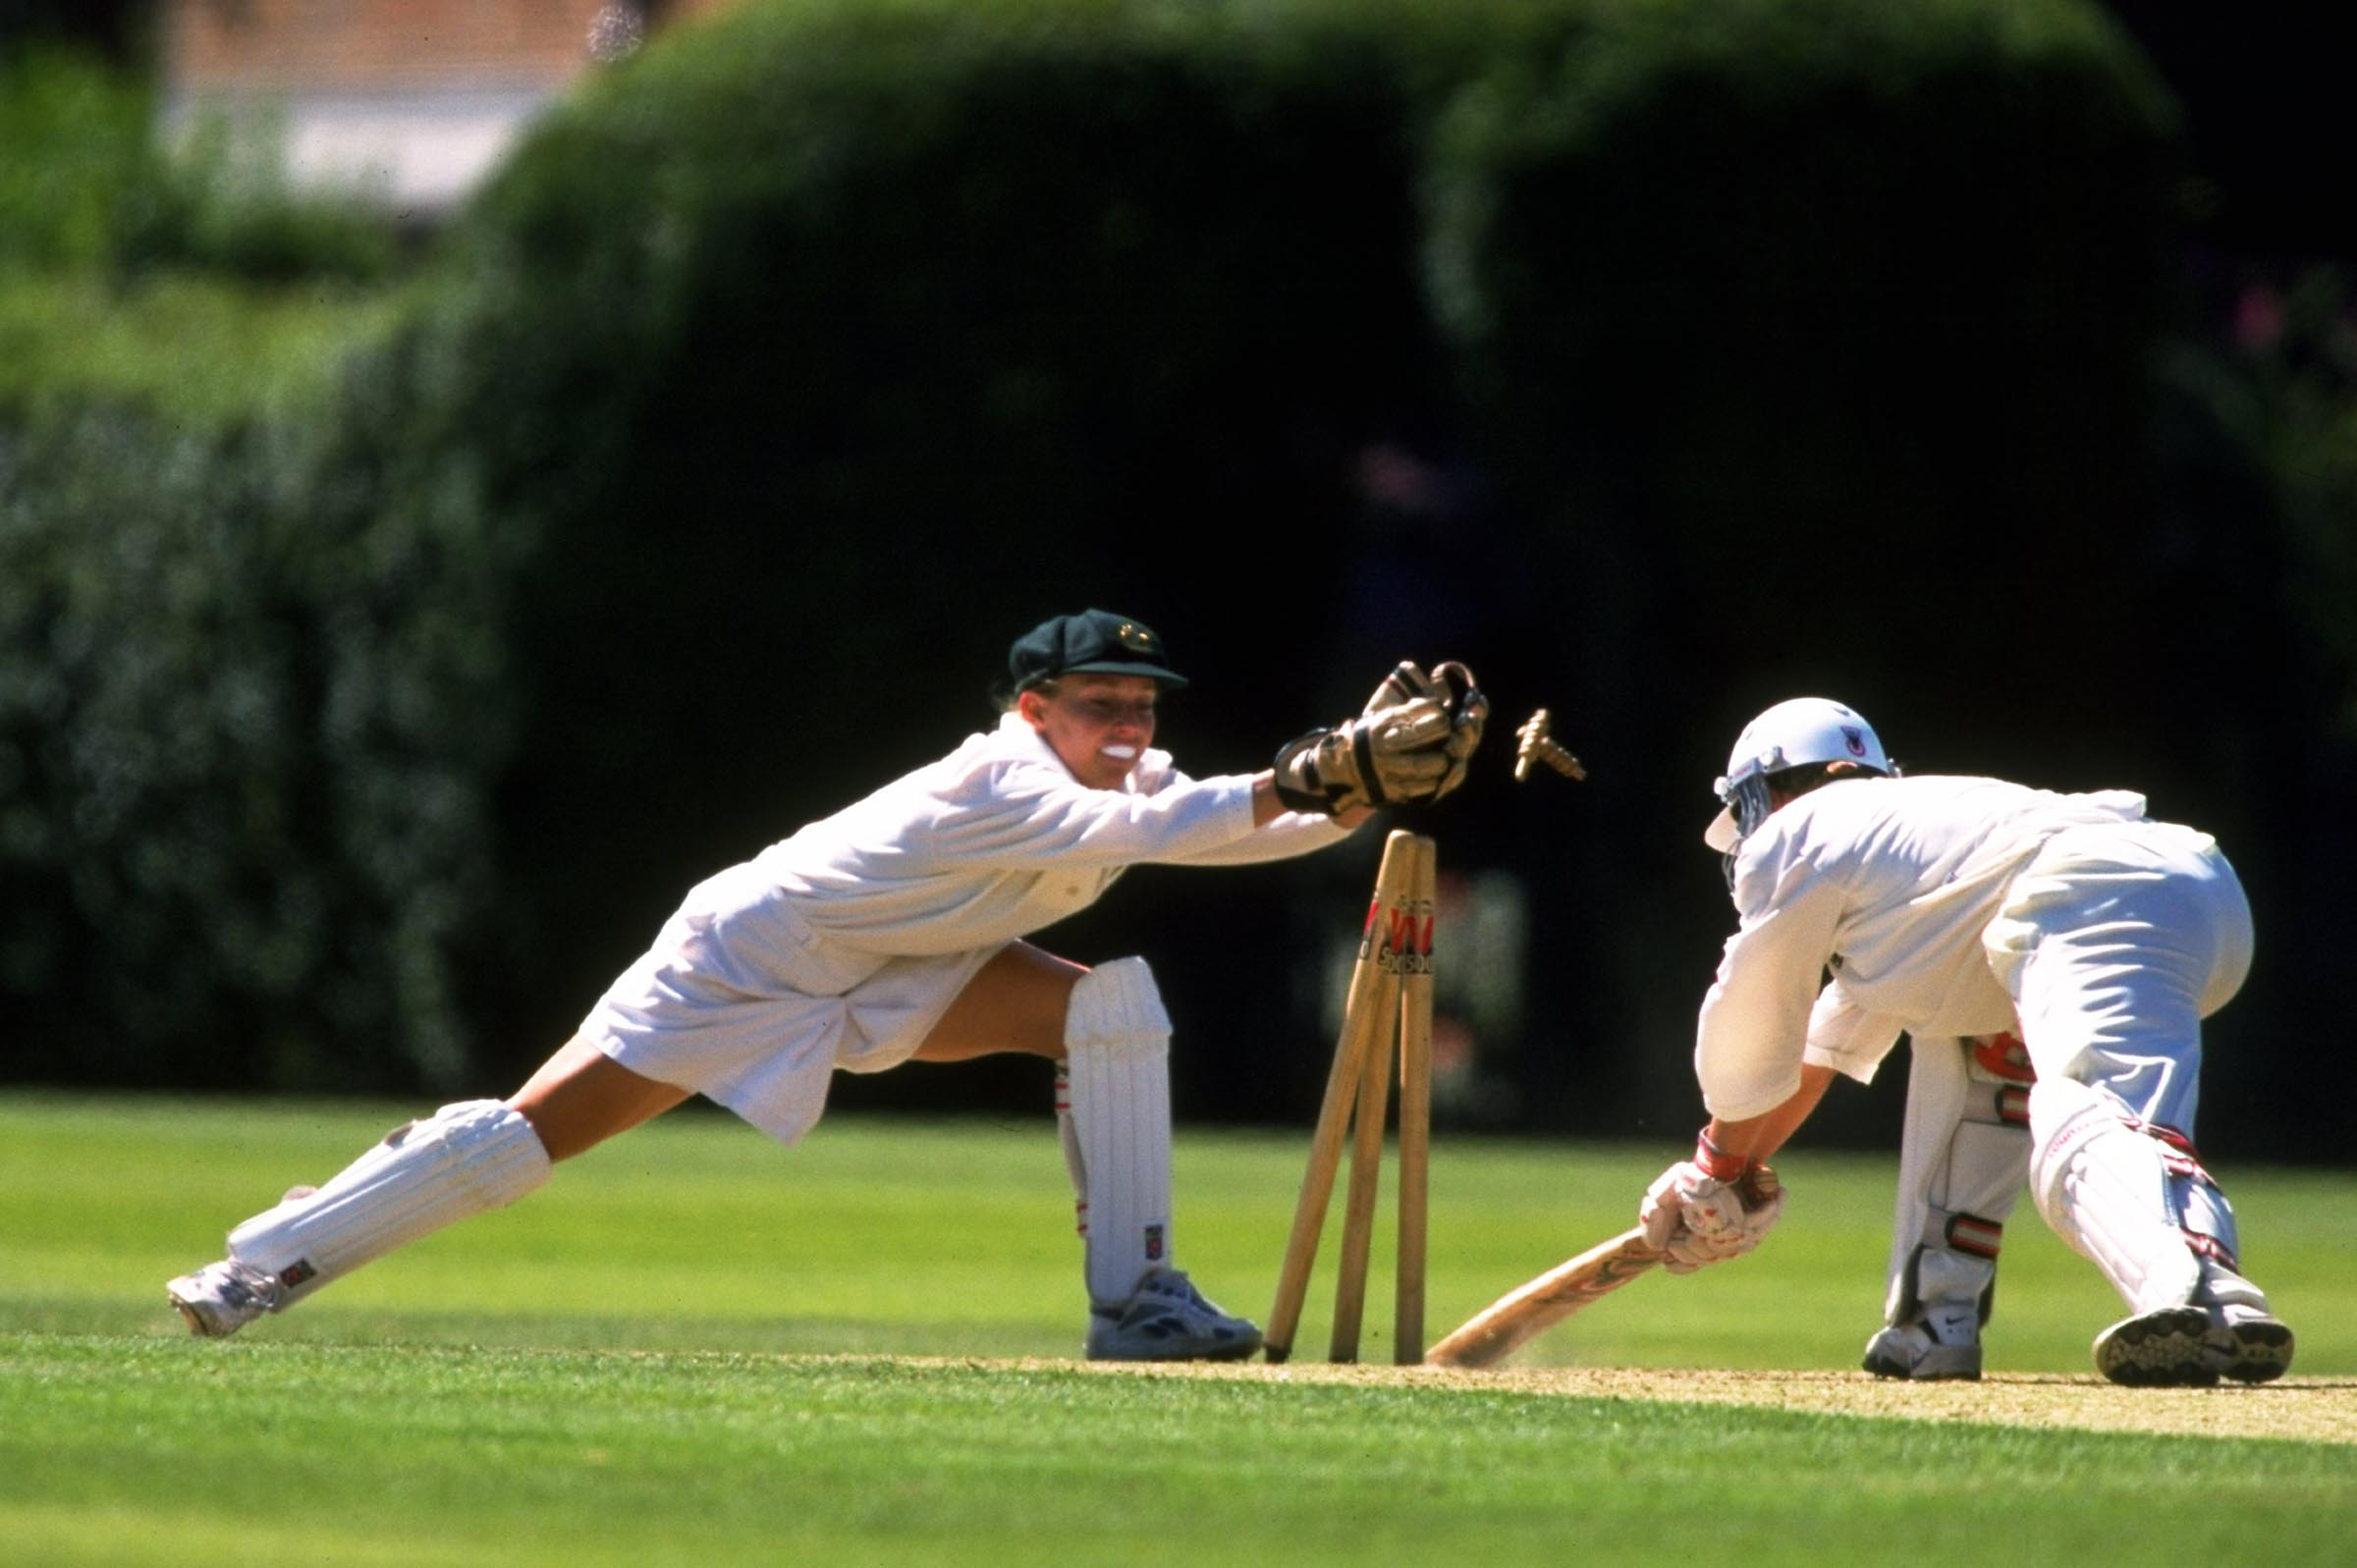 Price completes a stumping during an Ashes Test in August 1998 // Getty